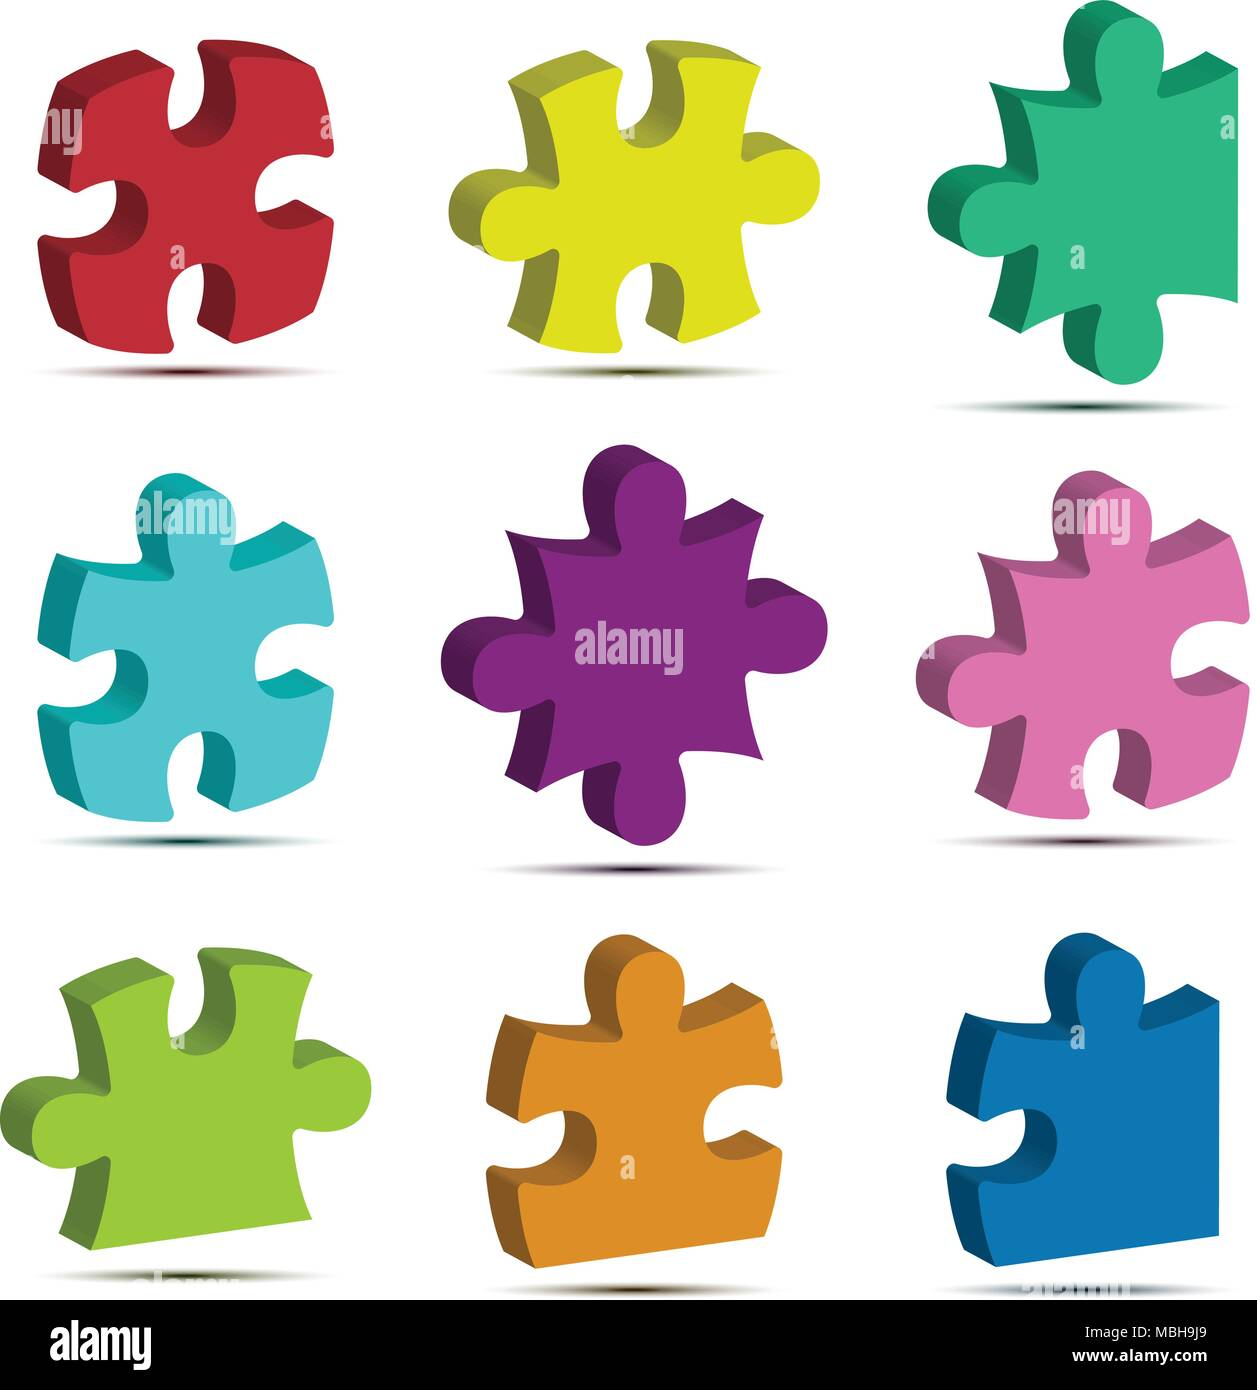 Colorful 3d Jigsaw Puzzle Icon Vector For Business Idea Graphic Design Concept